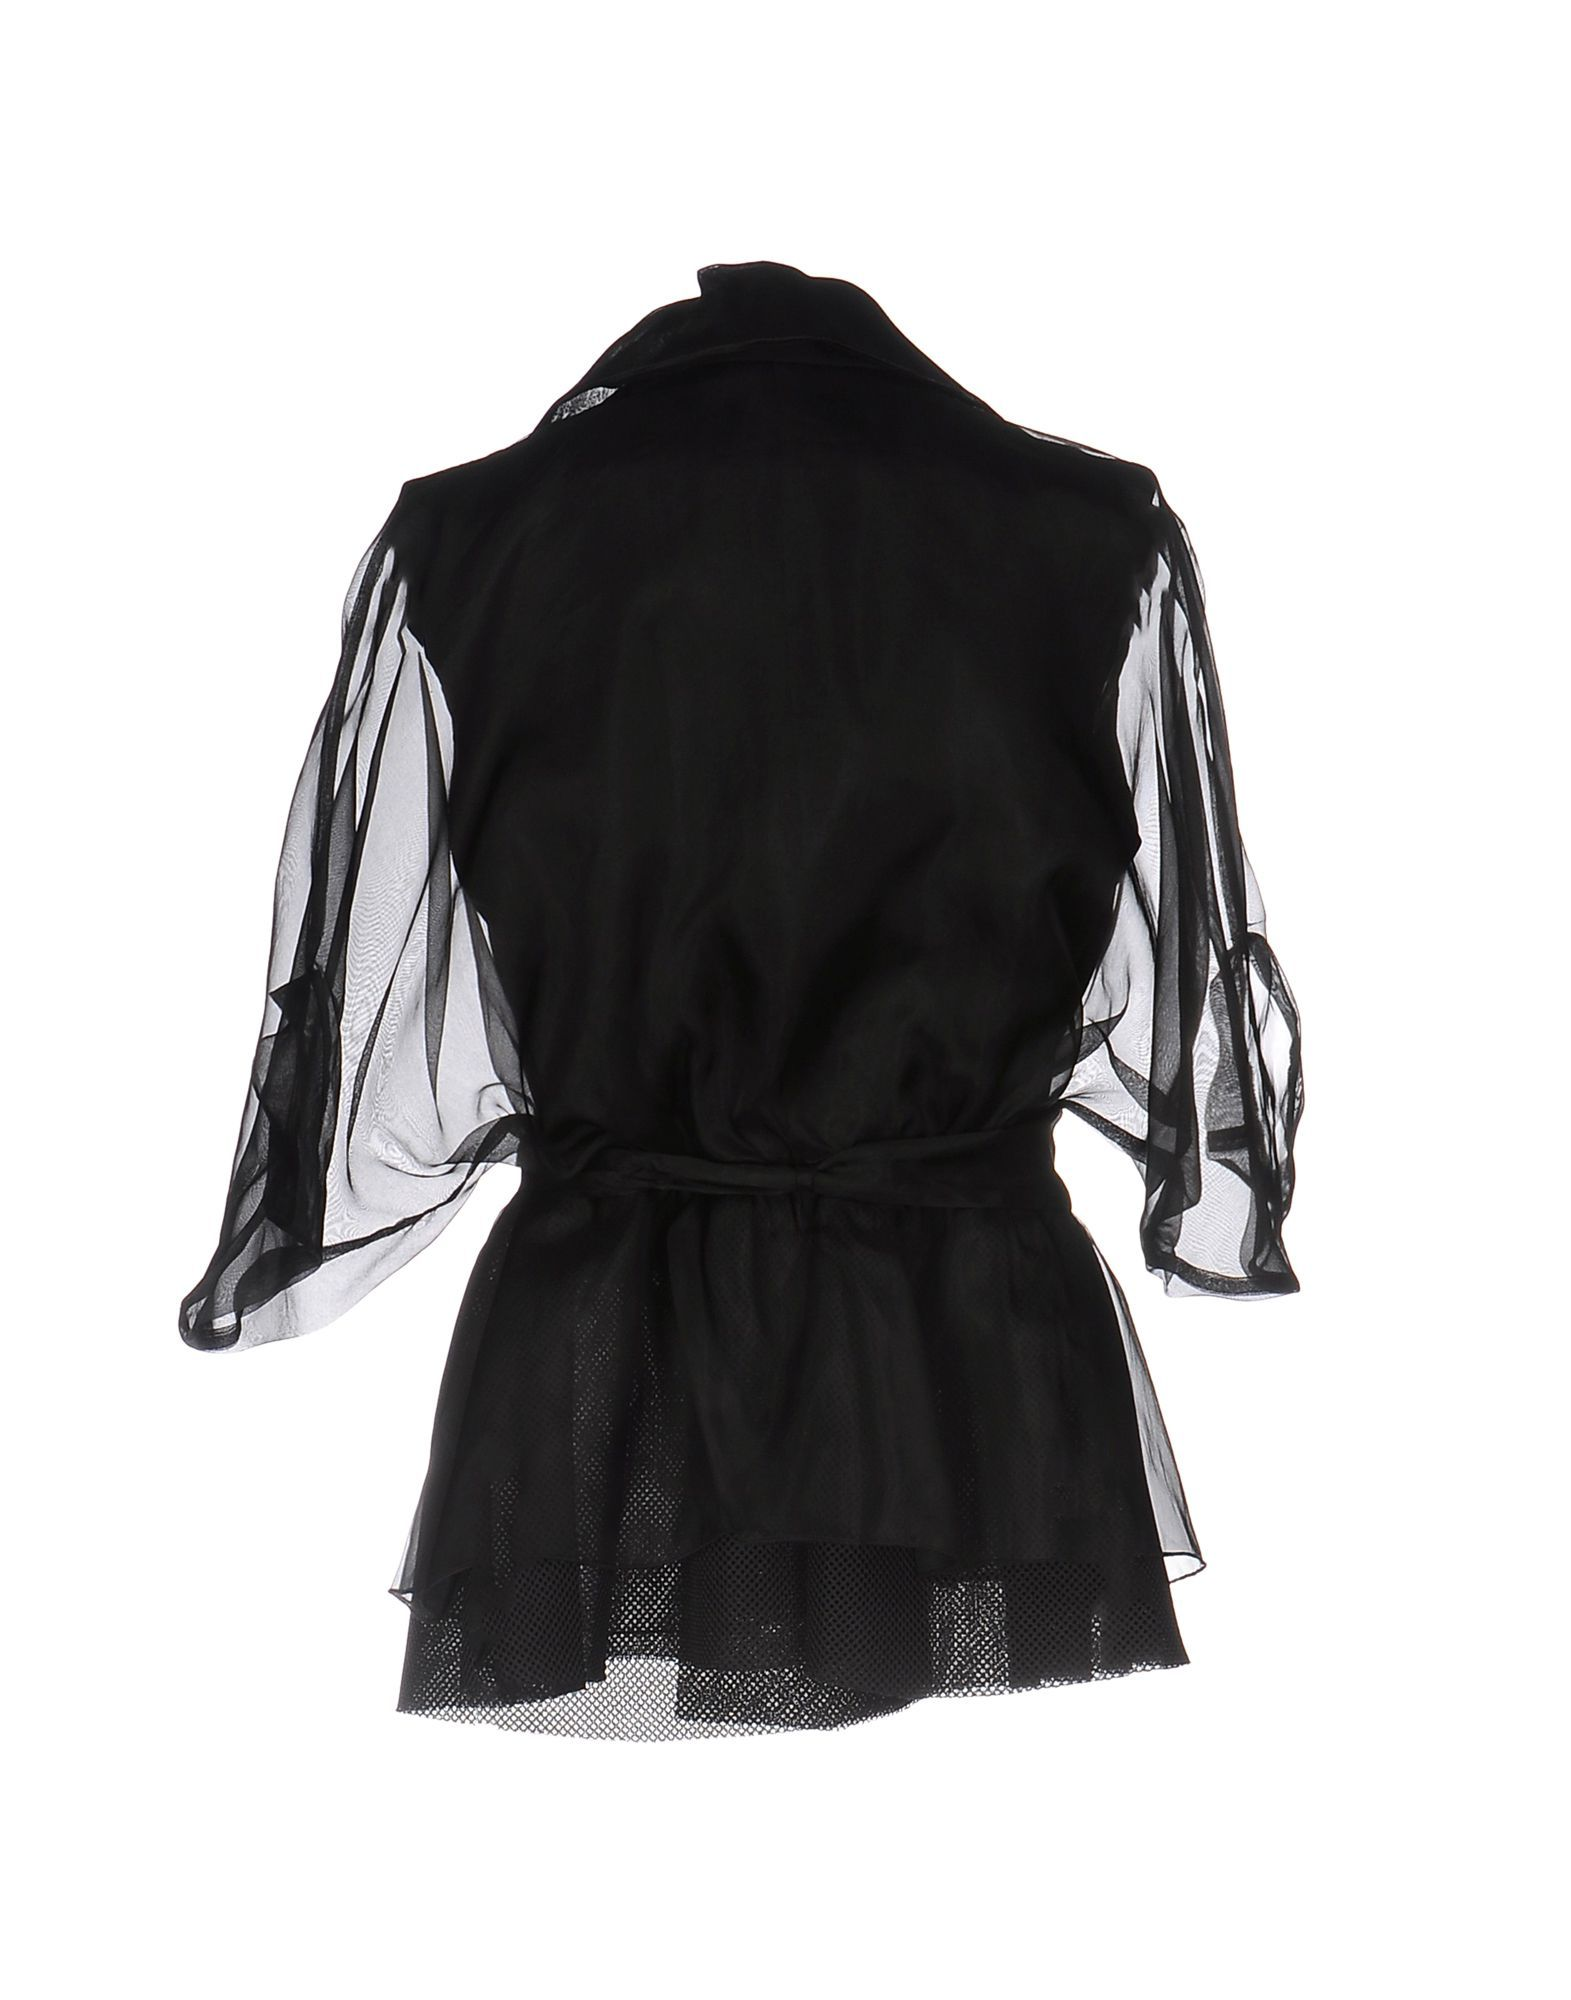 Mangano Black Double Breasted Jacket With Organza Sleeves